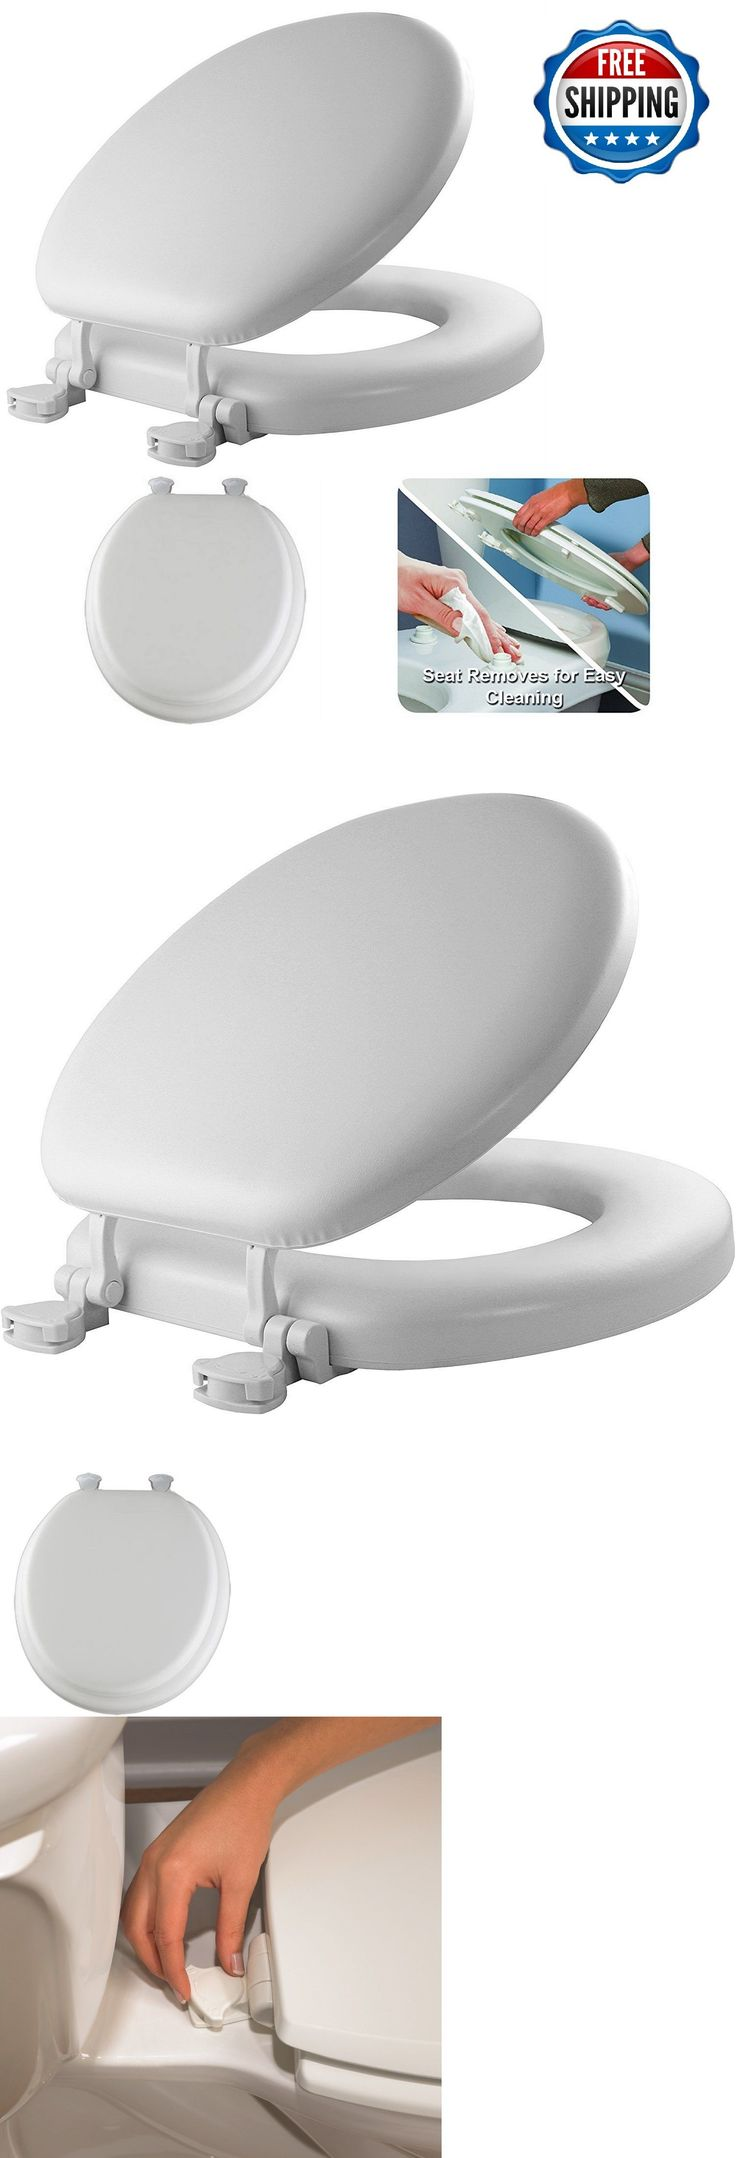 Toilet Seats 37637: Round Toilet Soft Seat Molded Wood Core Change Hinges White Cushioned Vinyl -> BUY IT NOW ONLY: $31.82 on eBay!